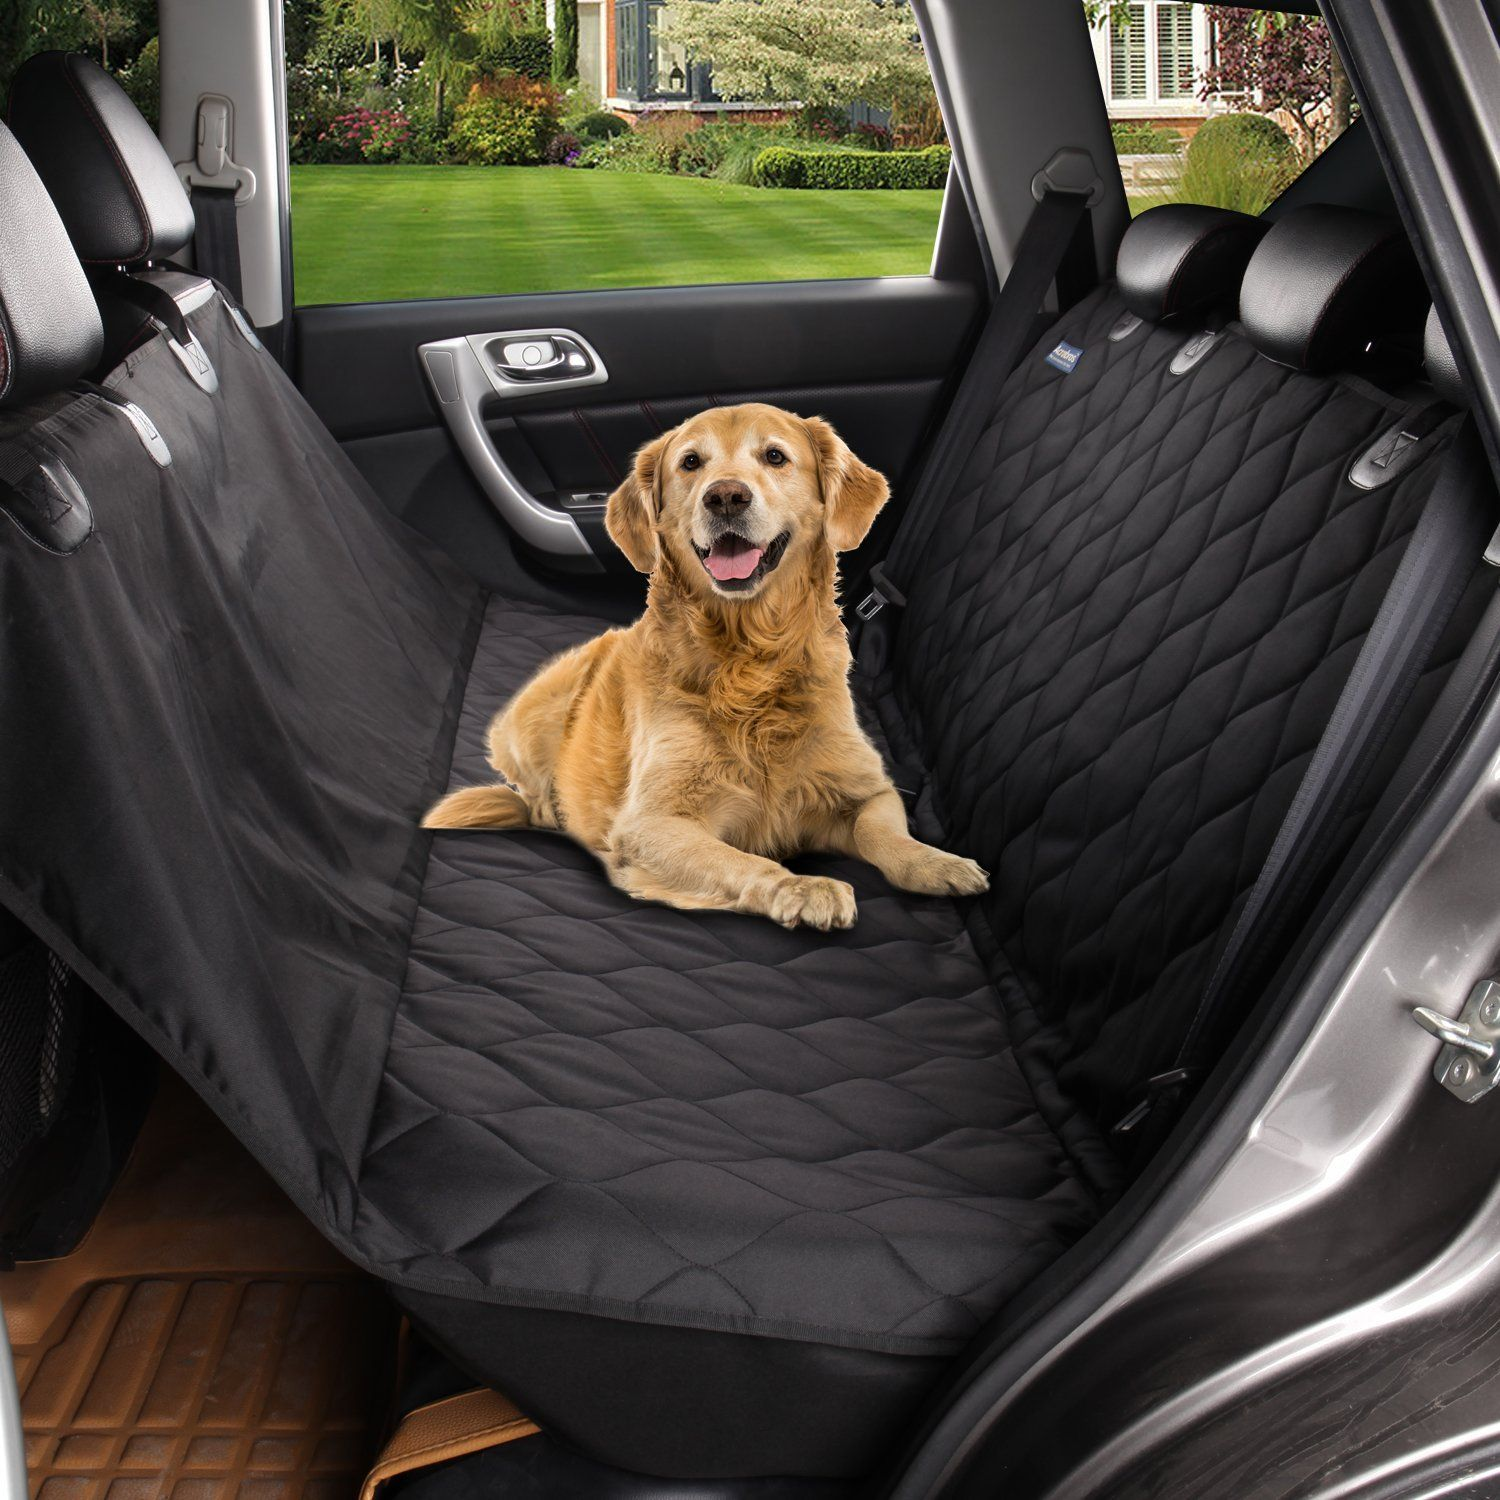 seat pet com hammock products henry car dog petdogcarseat wag doggiegadgets